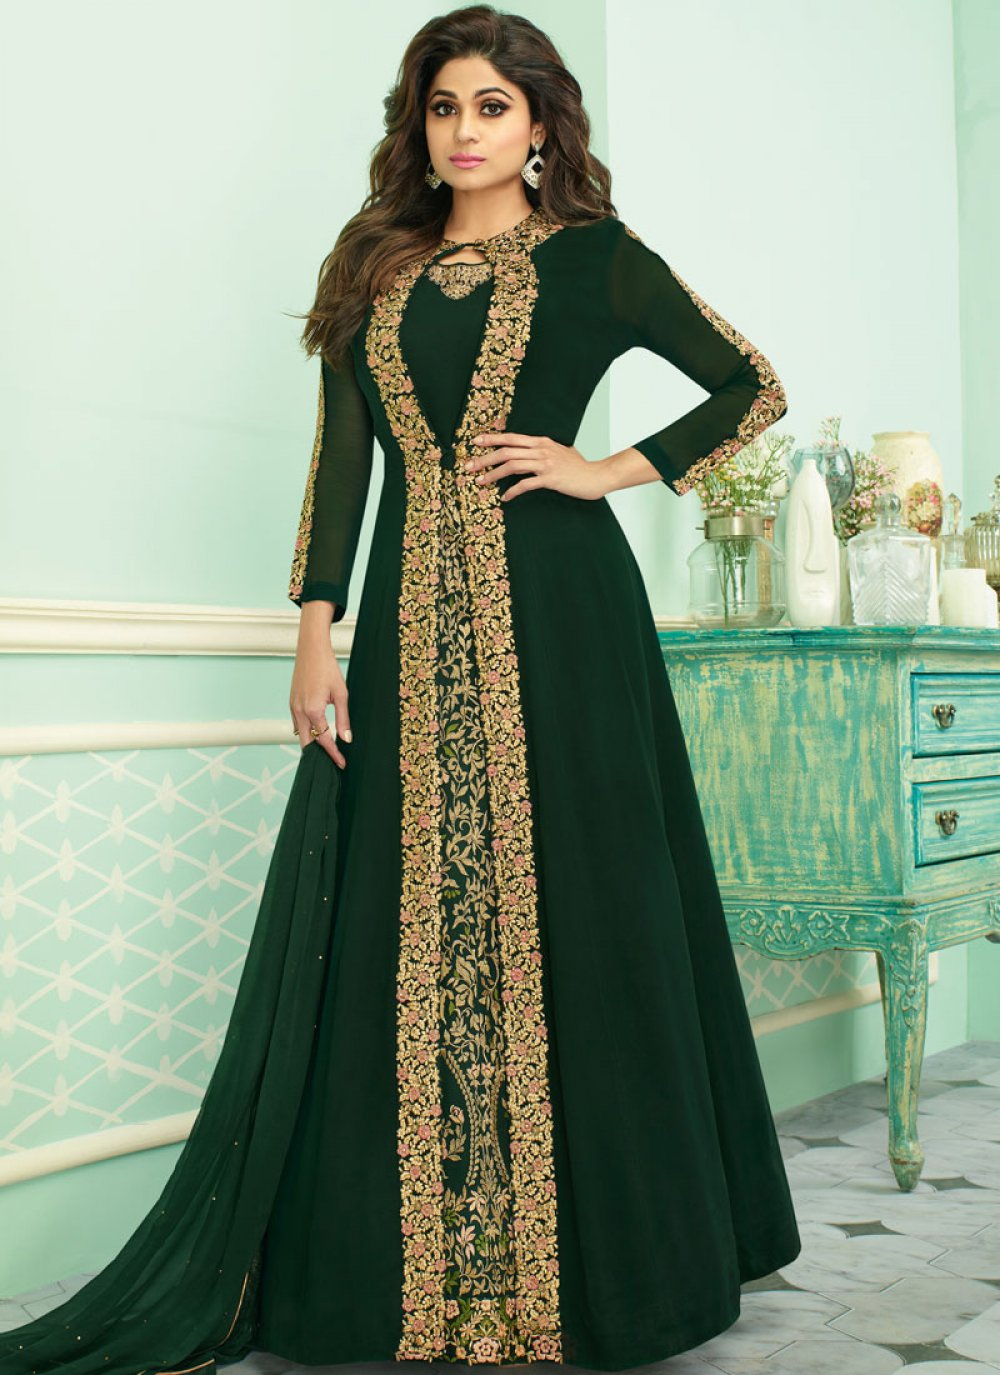 Zari Green Anarkali Suit